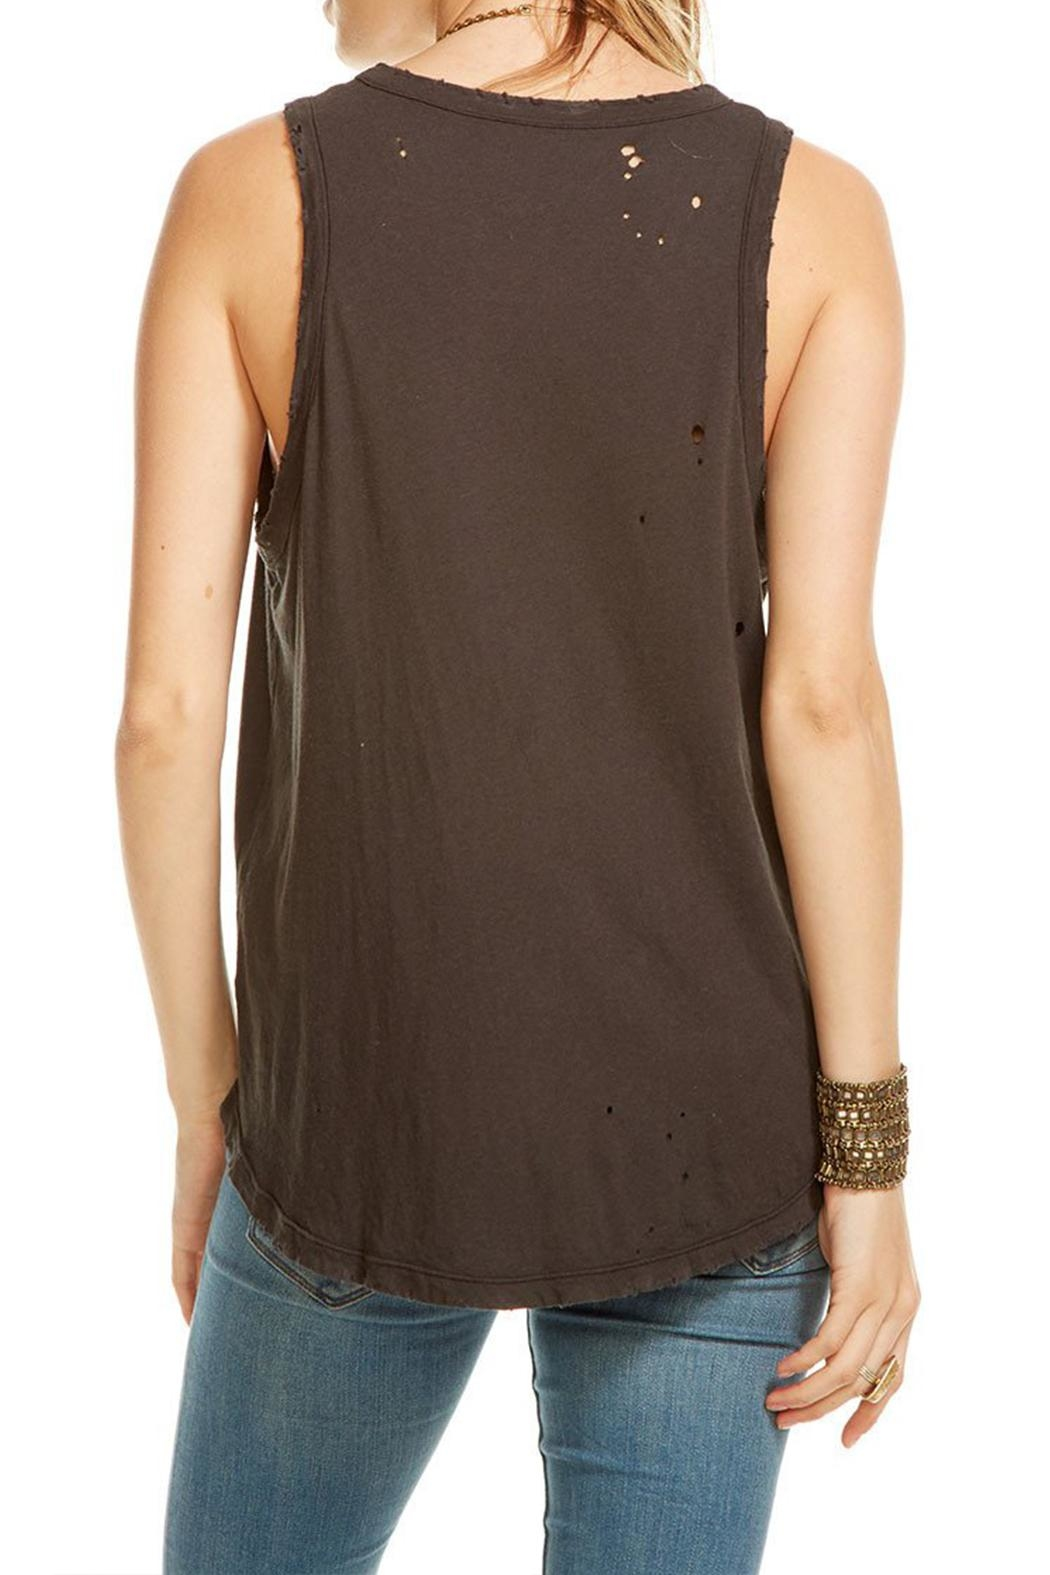 Chaser Lip Drip Tank Top - Side Cropped Image